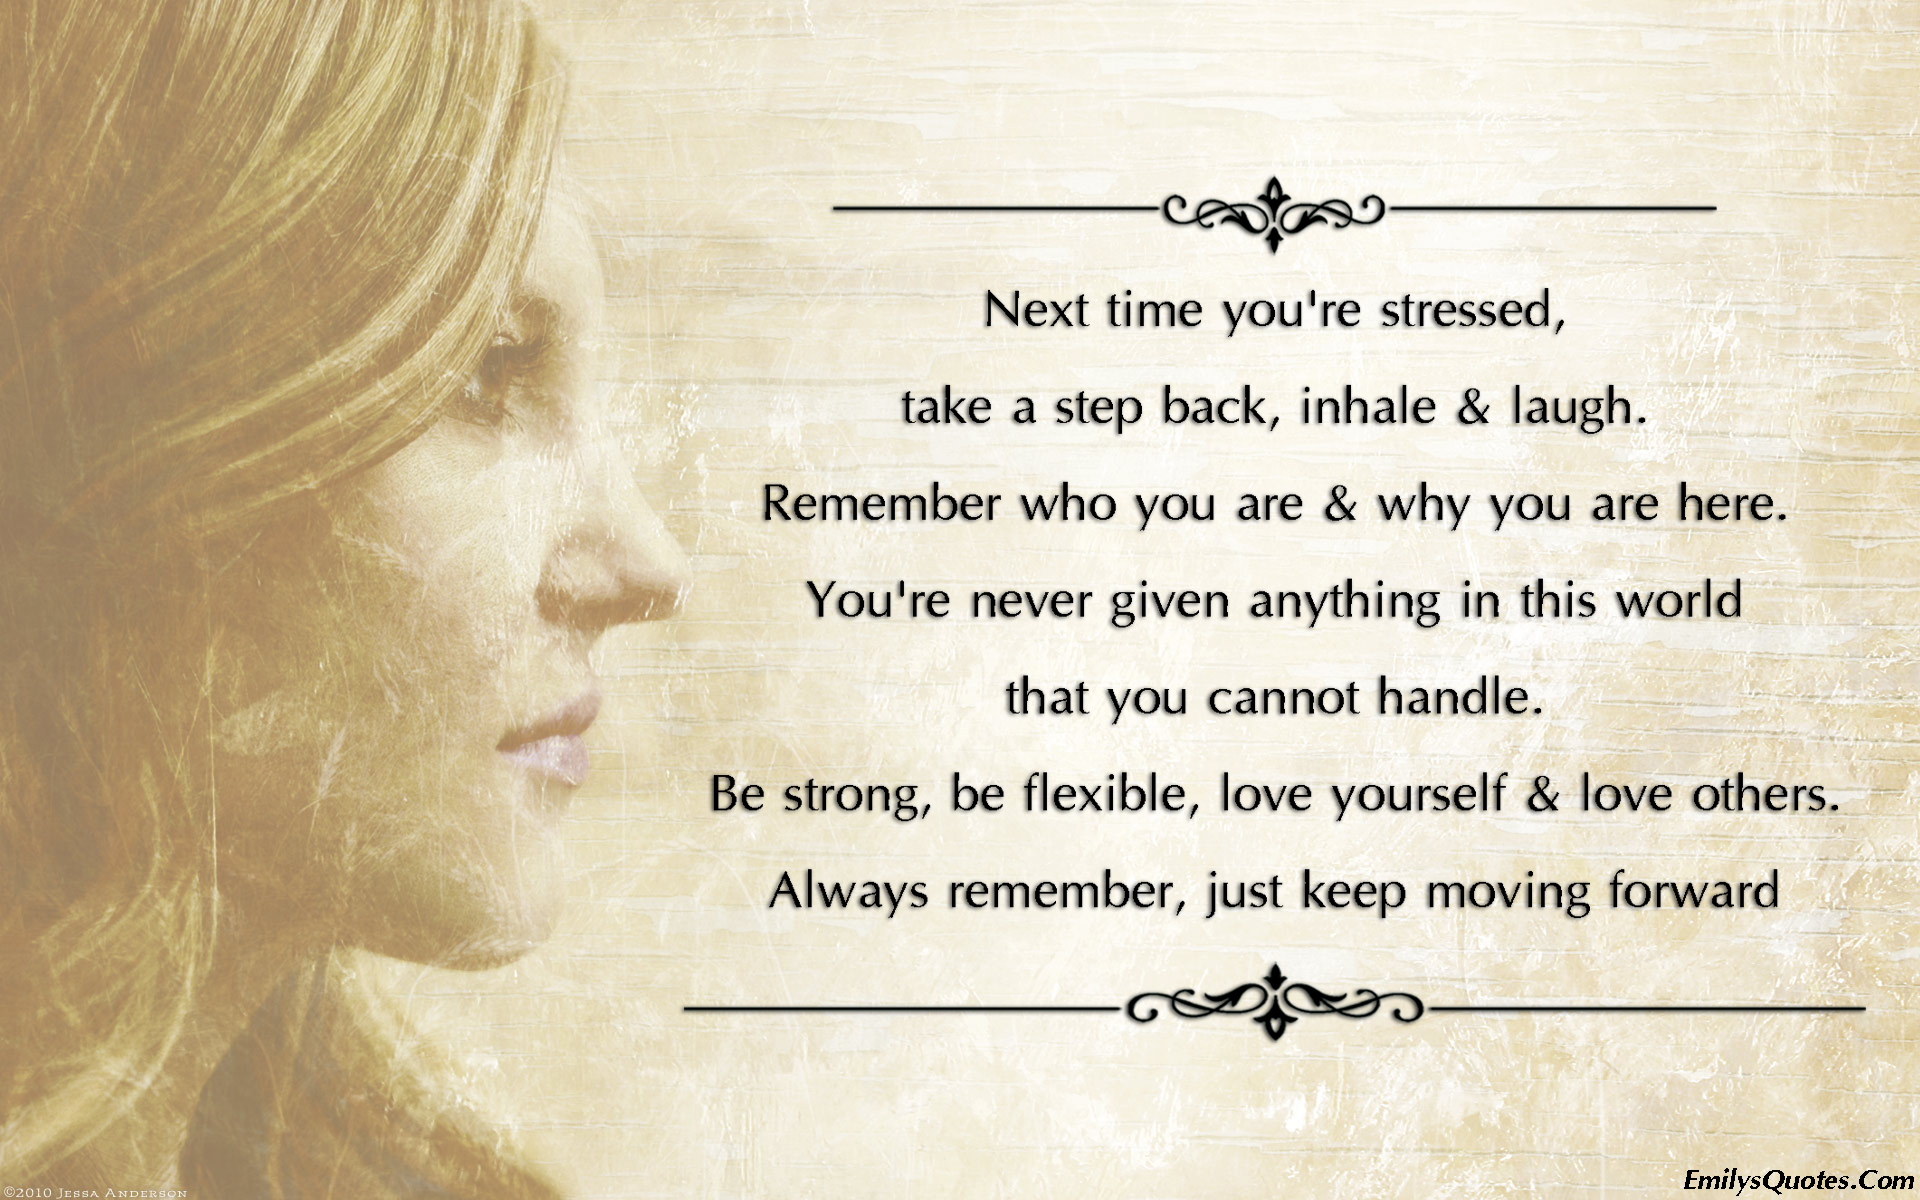 EmilysQuotes.Com - stress, love, strength, remember, inspirational, positive, amazing, great, encouraging, motivational, unknown